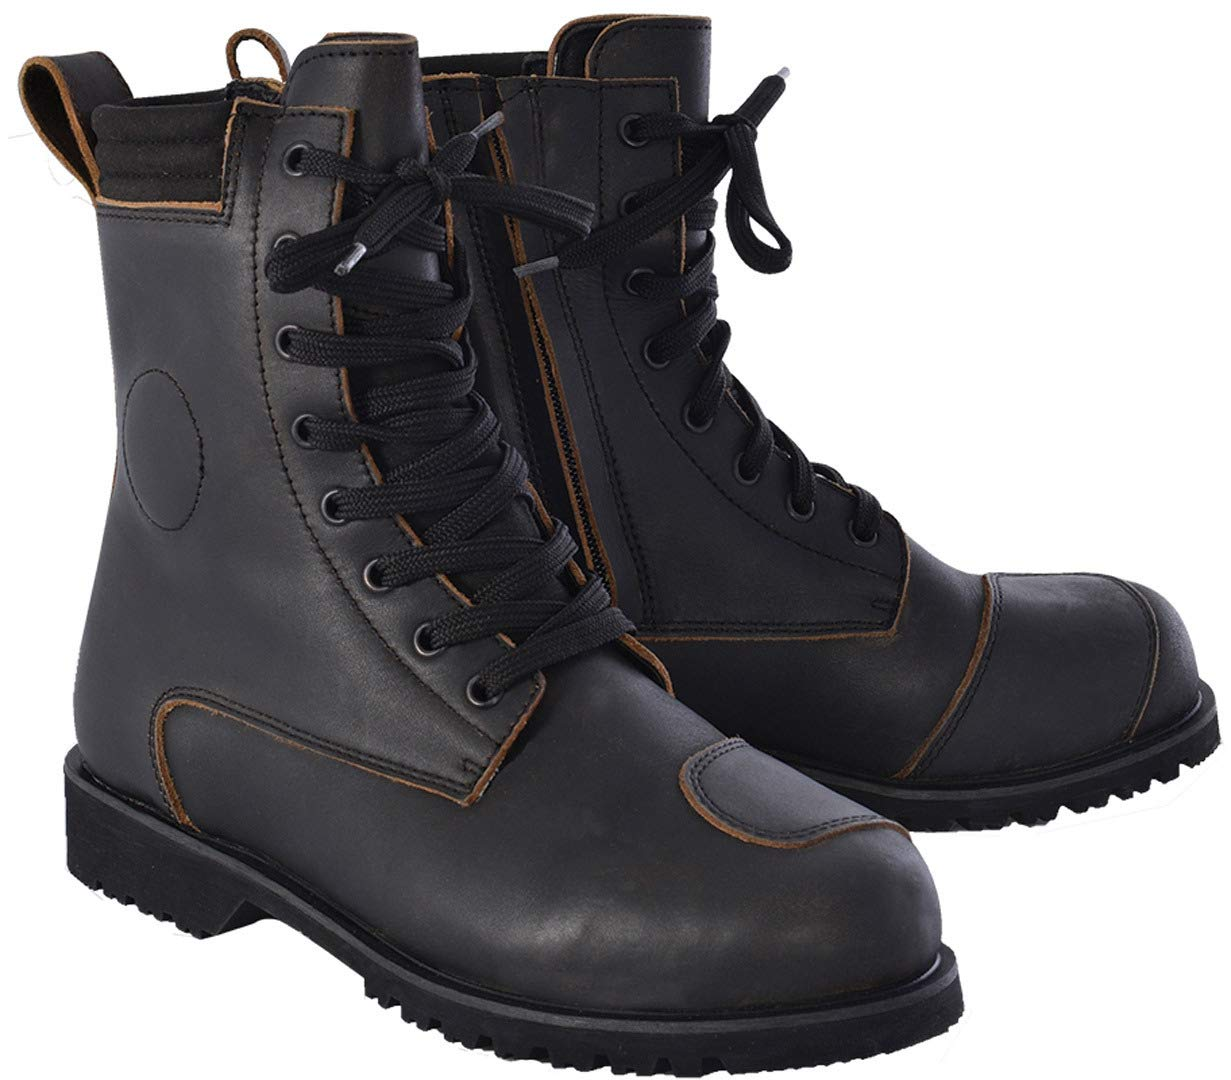 UK 6 Oxford Magdalen Ladies Leather Motorcycle Boots 39 Black BW12039